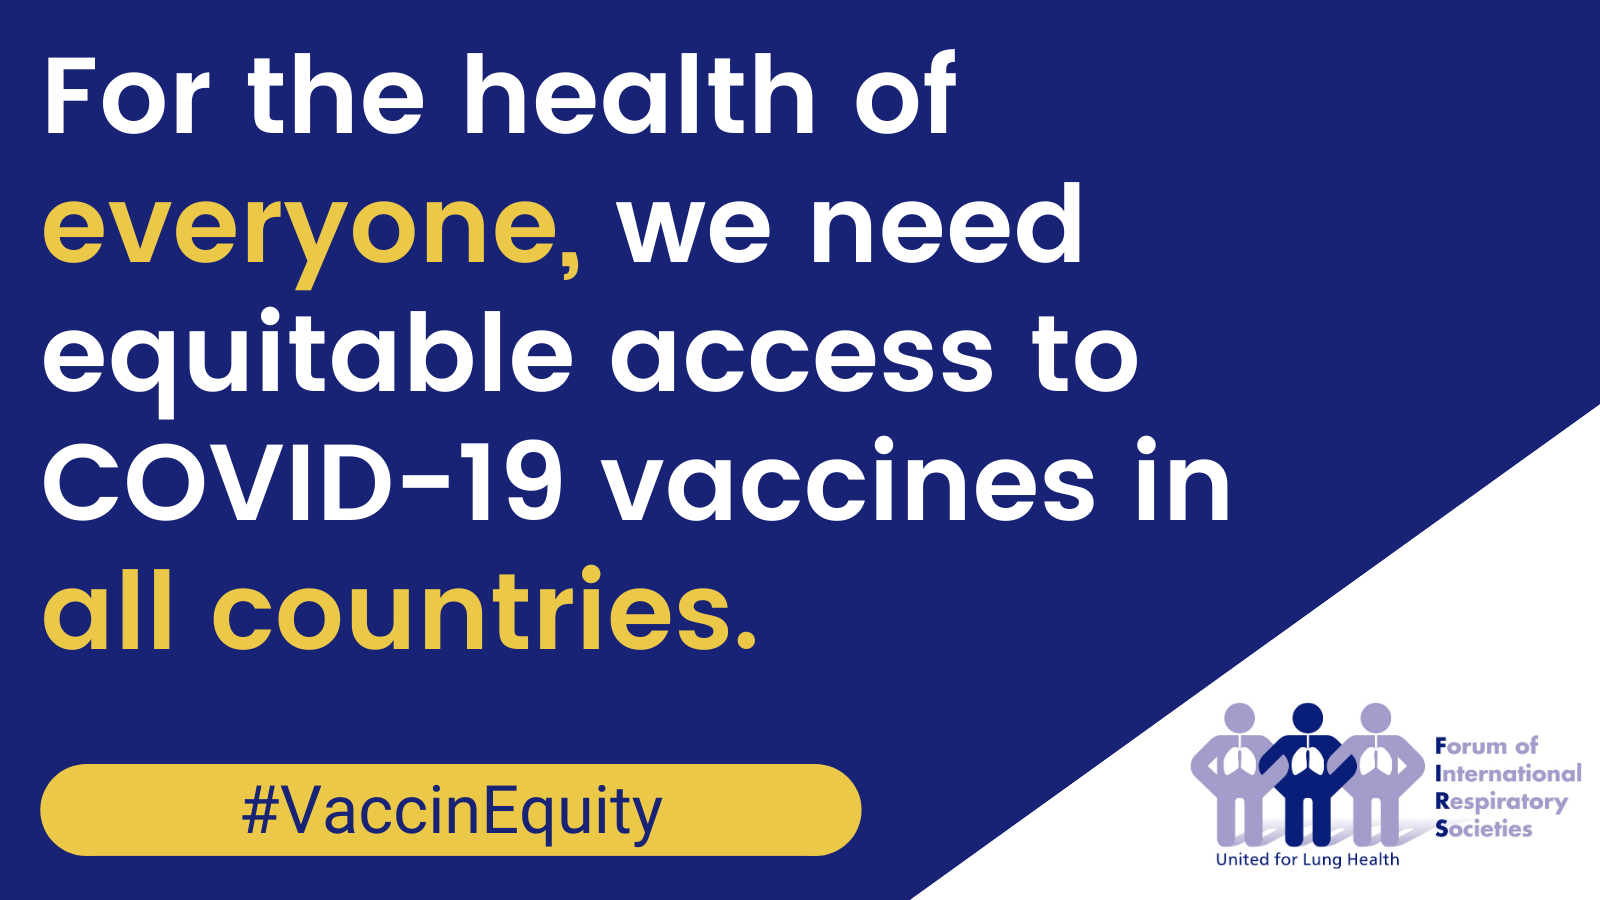 Vaccination is a key part to control the COVID-19 pandemic. For vaccines to work they should have acceptable efficacy and safety and be delivered equitably worldwide